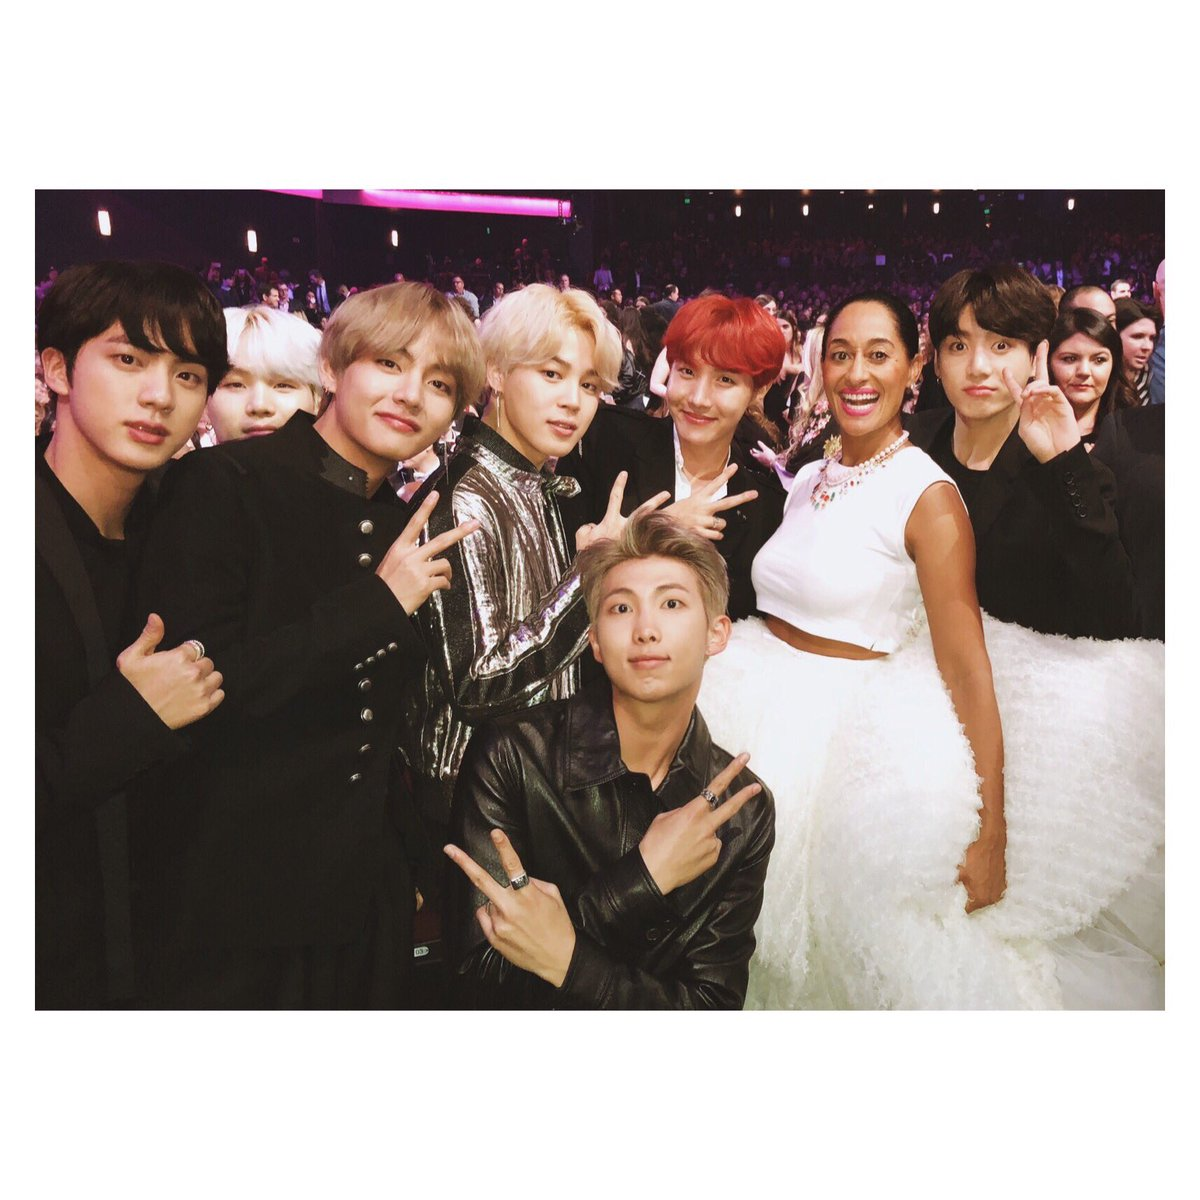 RT @TraceeEllisRoss: Got to meet @BTS_twt at the @AMAS! 😀#AMAs #FBF 📸: @CatieLaffoon https://t.co/Vt3lhiCIdL